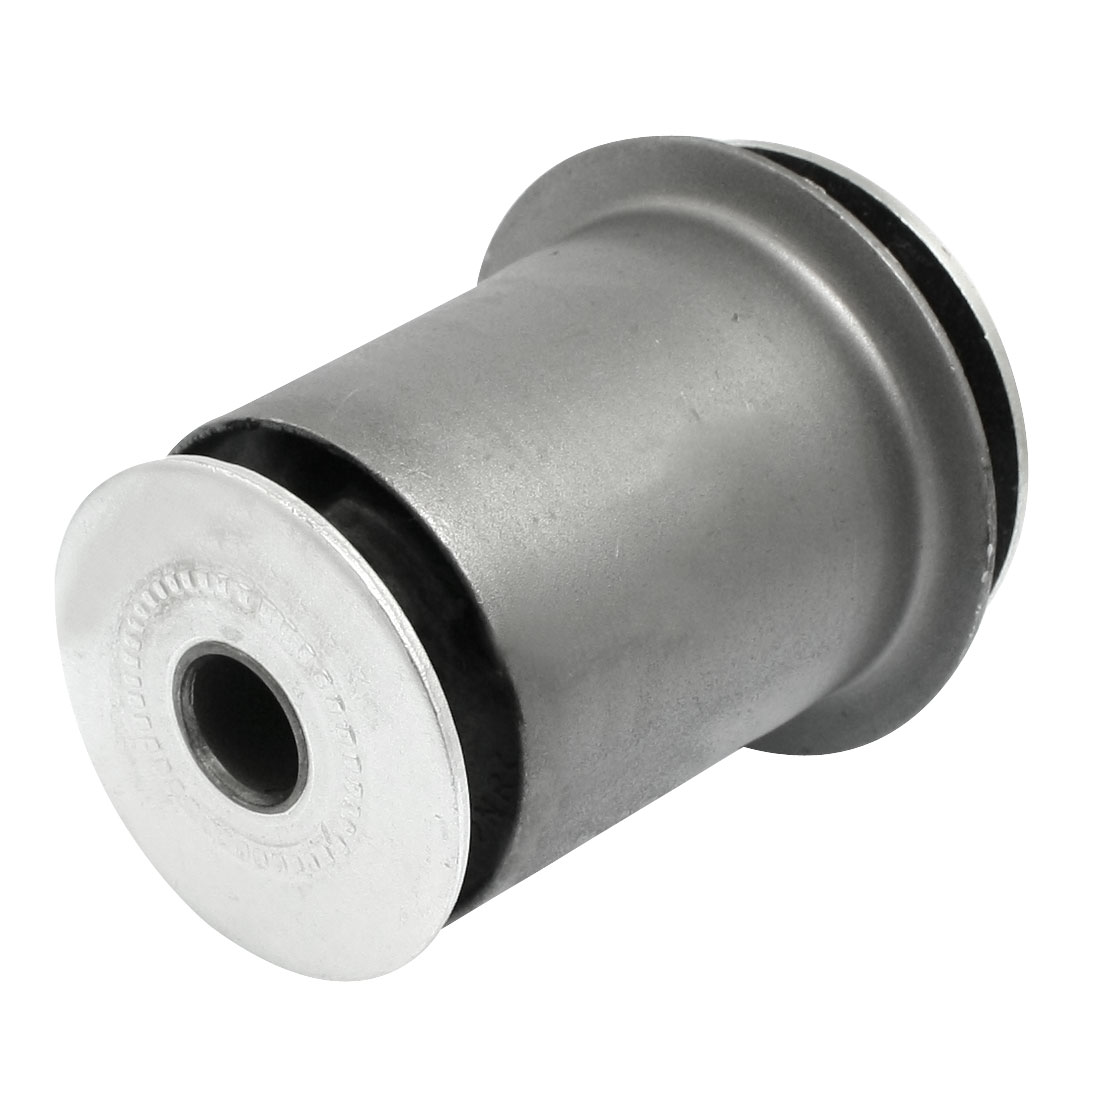 Suspension Control Lower Front Arm Bushing for Toyota Prado